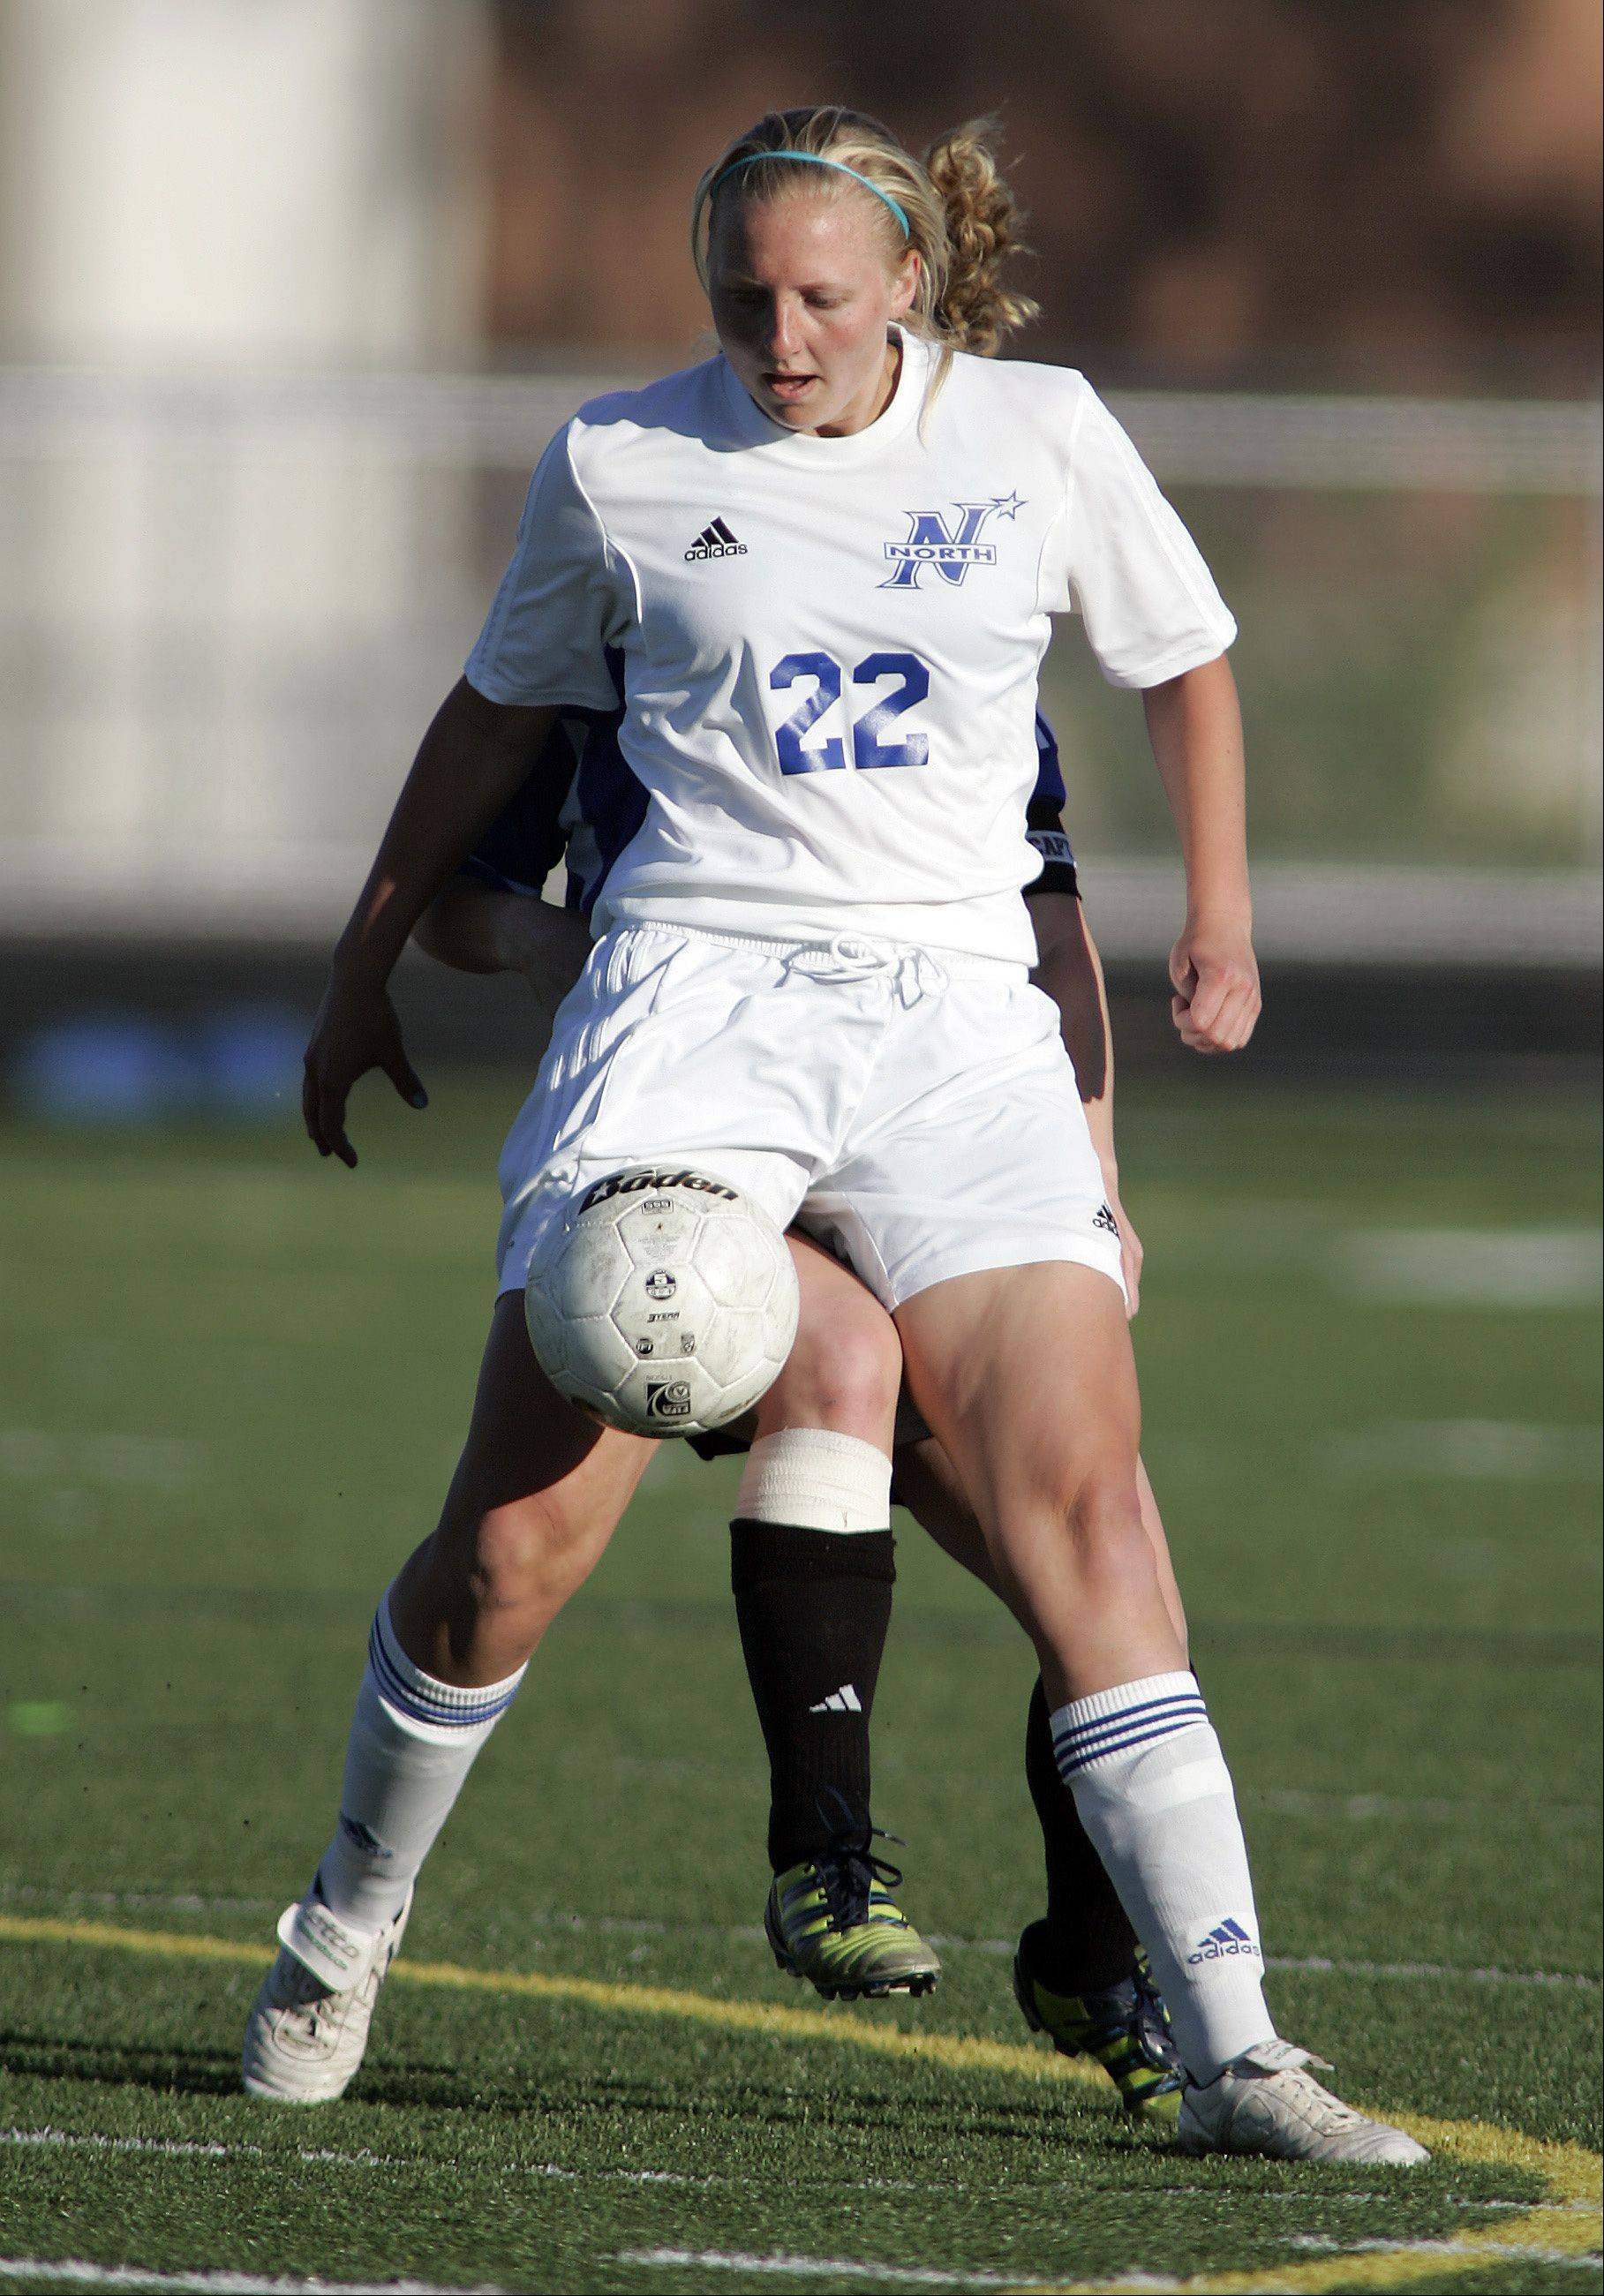 St. Charles North's Sophie Pohl (22) during the IHSA Girl's 3A Sectional Soccer Tournament Friday at Hoffman Estates High School.